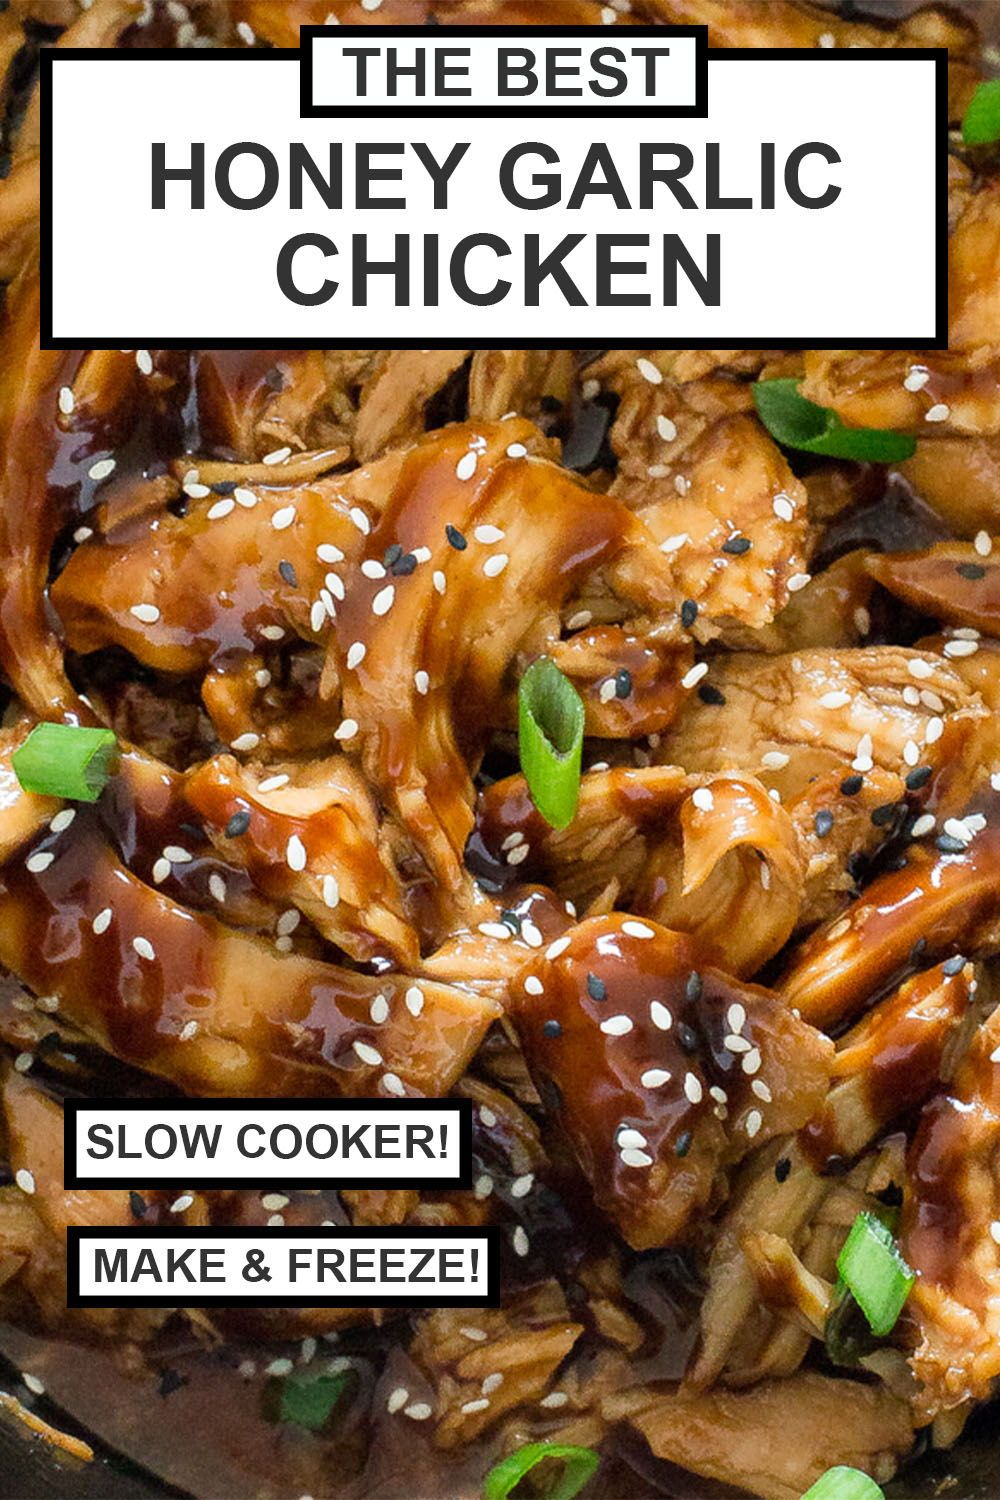 Easy Slow Cooker Honey Garlic Chicken. Slow cooked boneless chicken cooked in a sweet and tangy Asian inspired sauce. The chicken comes out tender and moist by cooking it low and slow in the crockpot. Make this a meal with broccoli & veggies! I love serving this with cauliflower rice to soak up all the sauce for a healthy low carb dinner! Make ahead and store in the freezer! | chefsavvy.com #recipe #slowcooker #crockpot #freezermeal #honey #chicken #garlicchicken